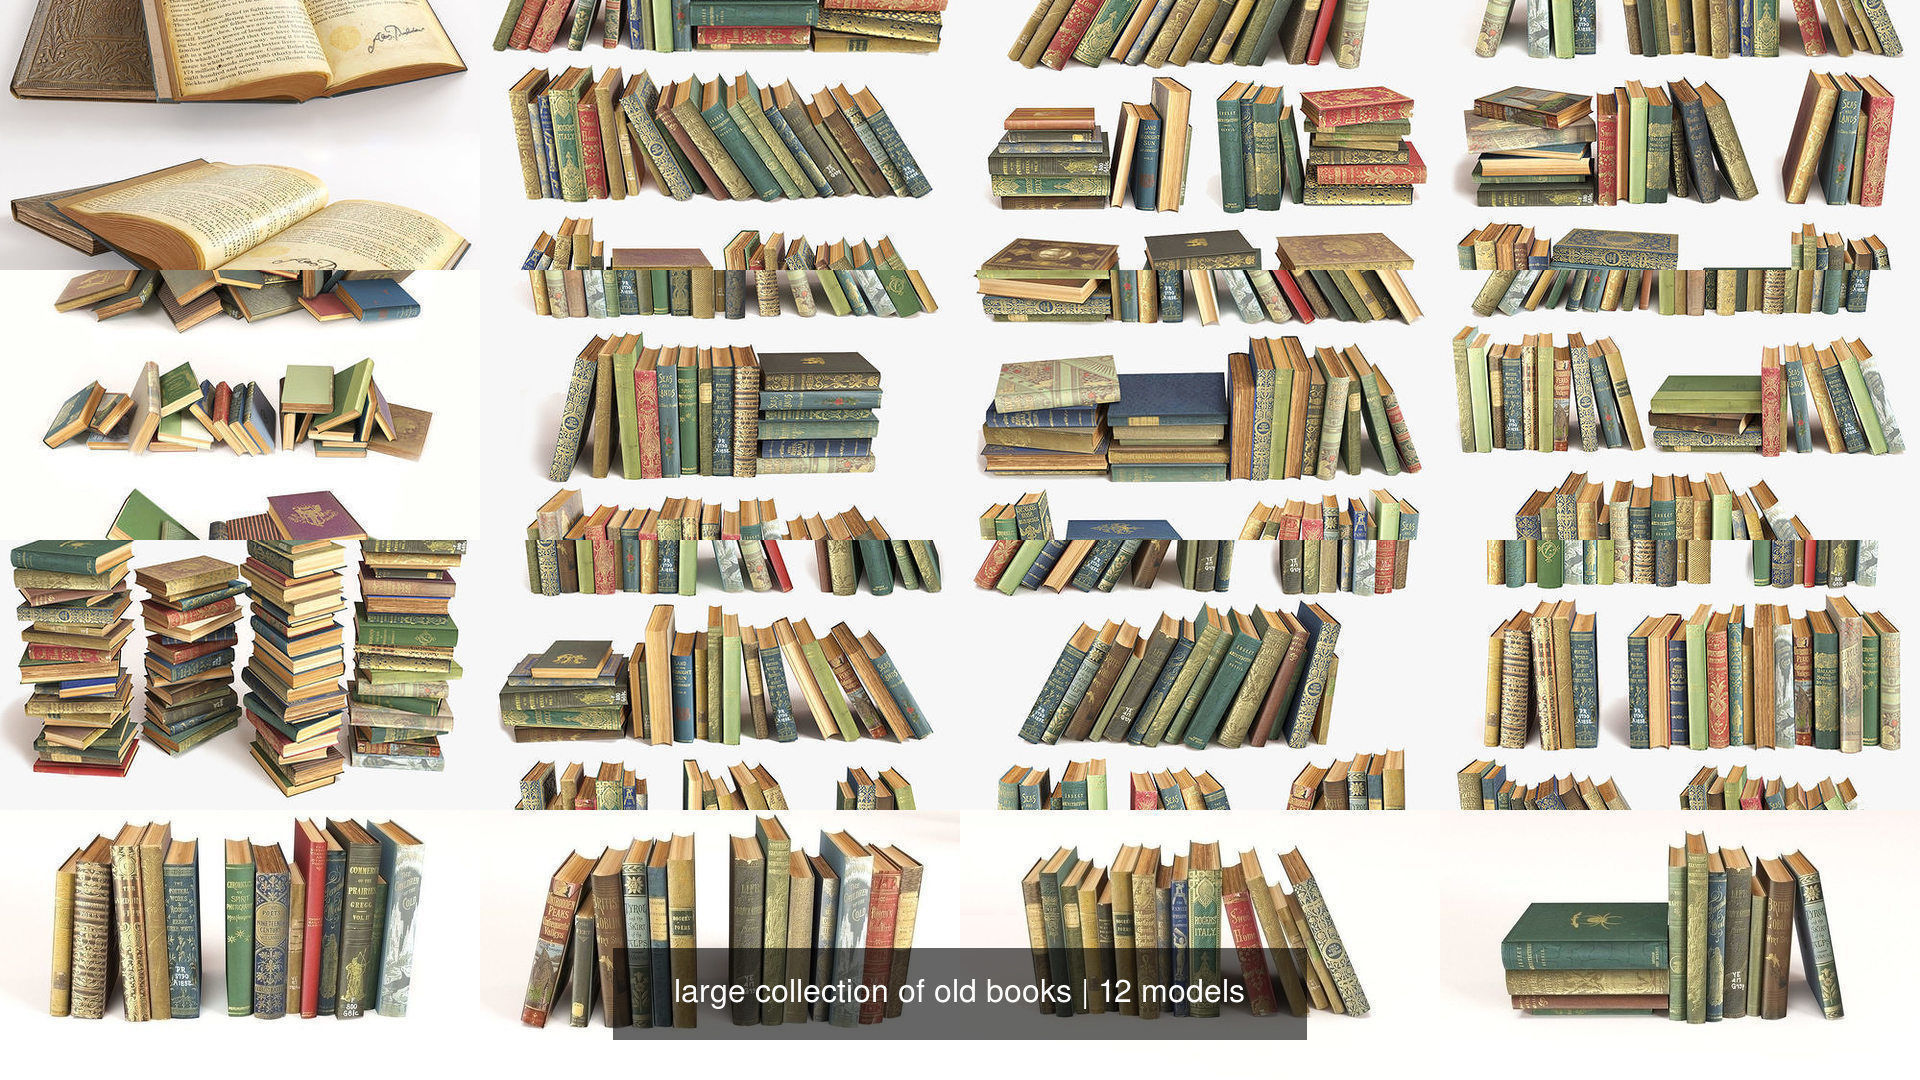 large collection of old books